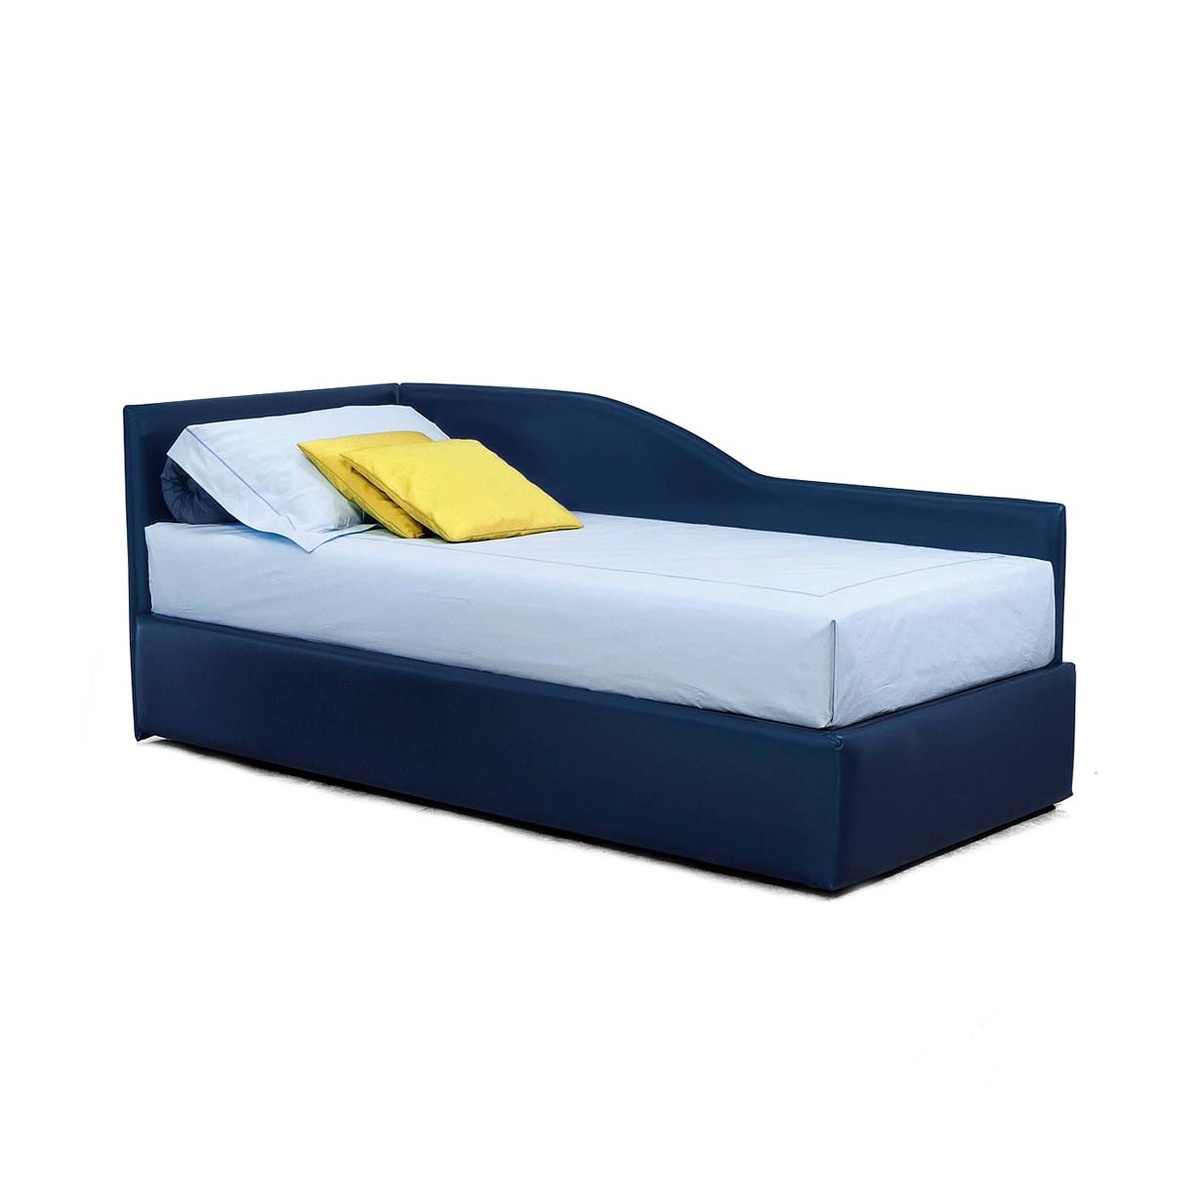 Chaise Longue Letto Singolo.Letto Singolo Titti By Bonaldo Lovethesign